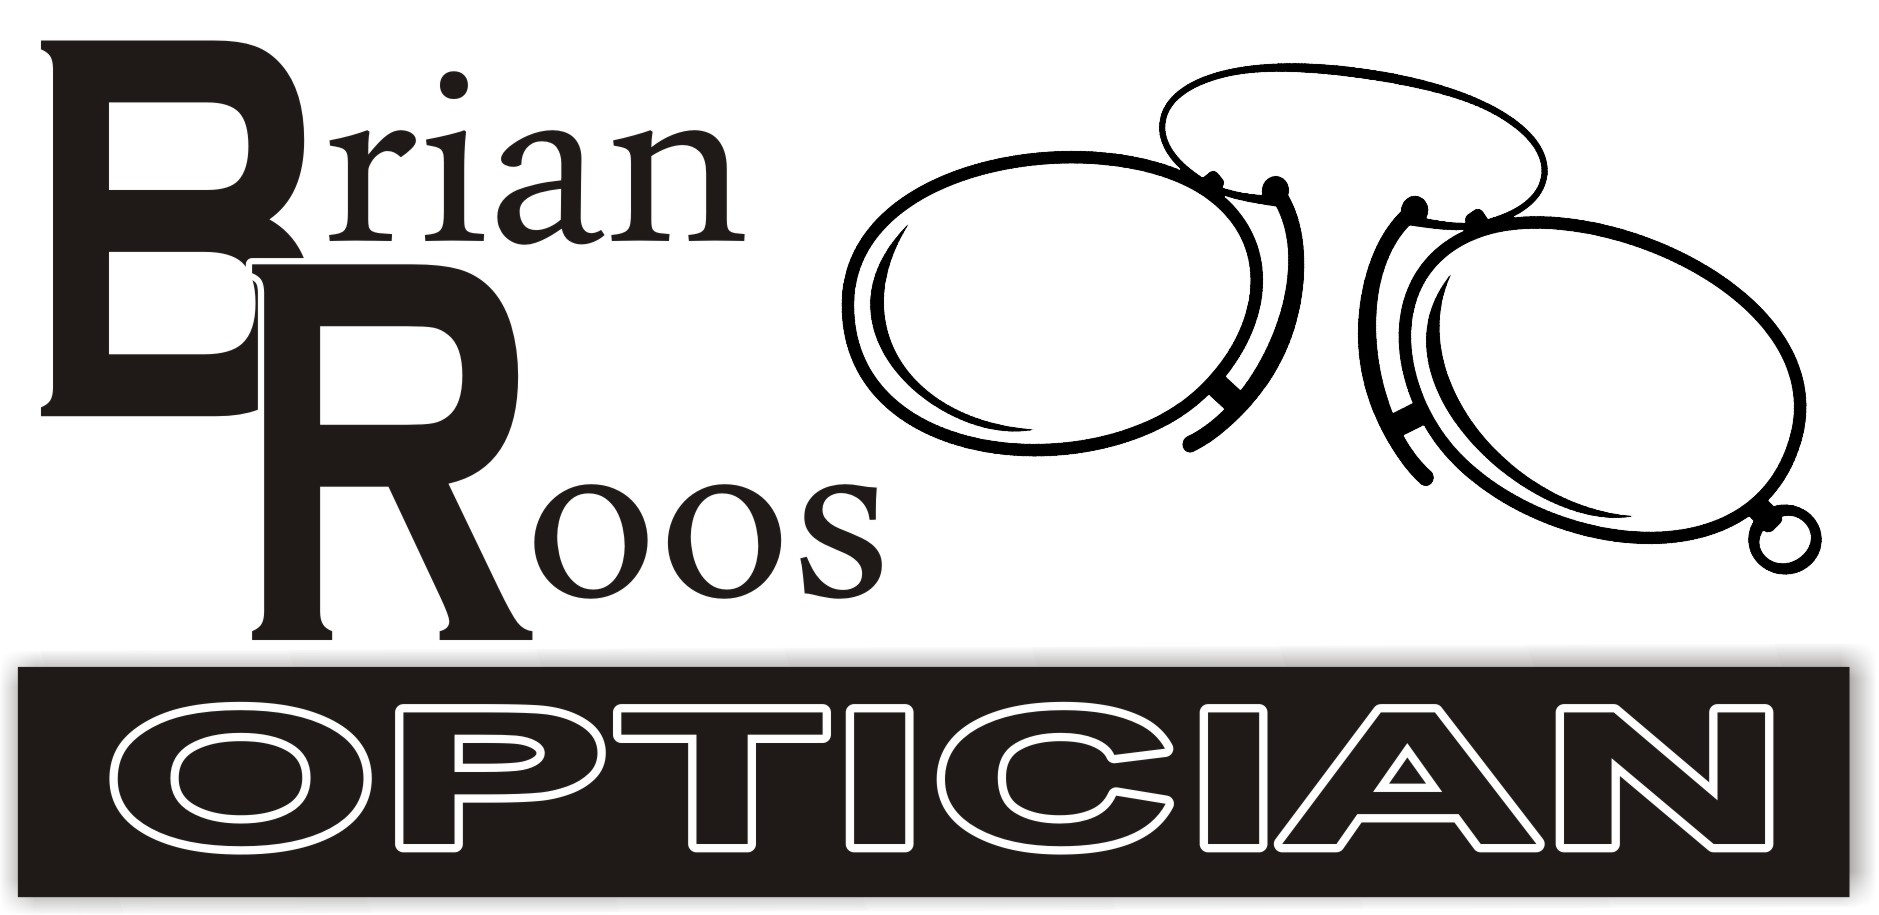 Brian Roos Optician